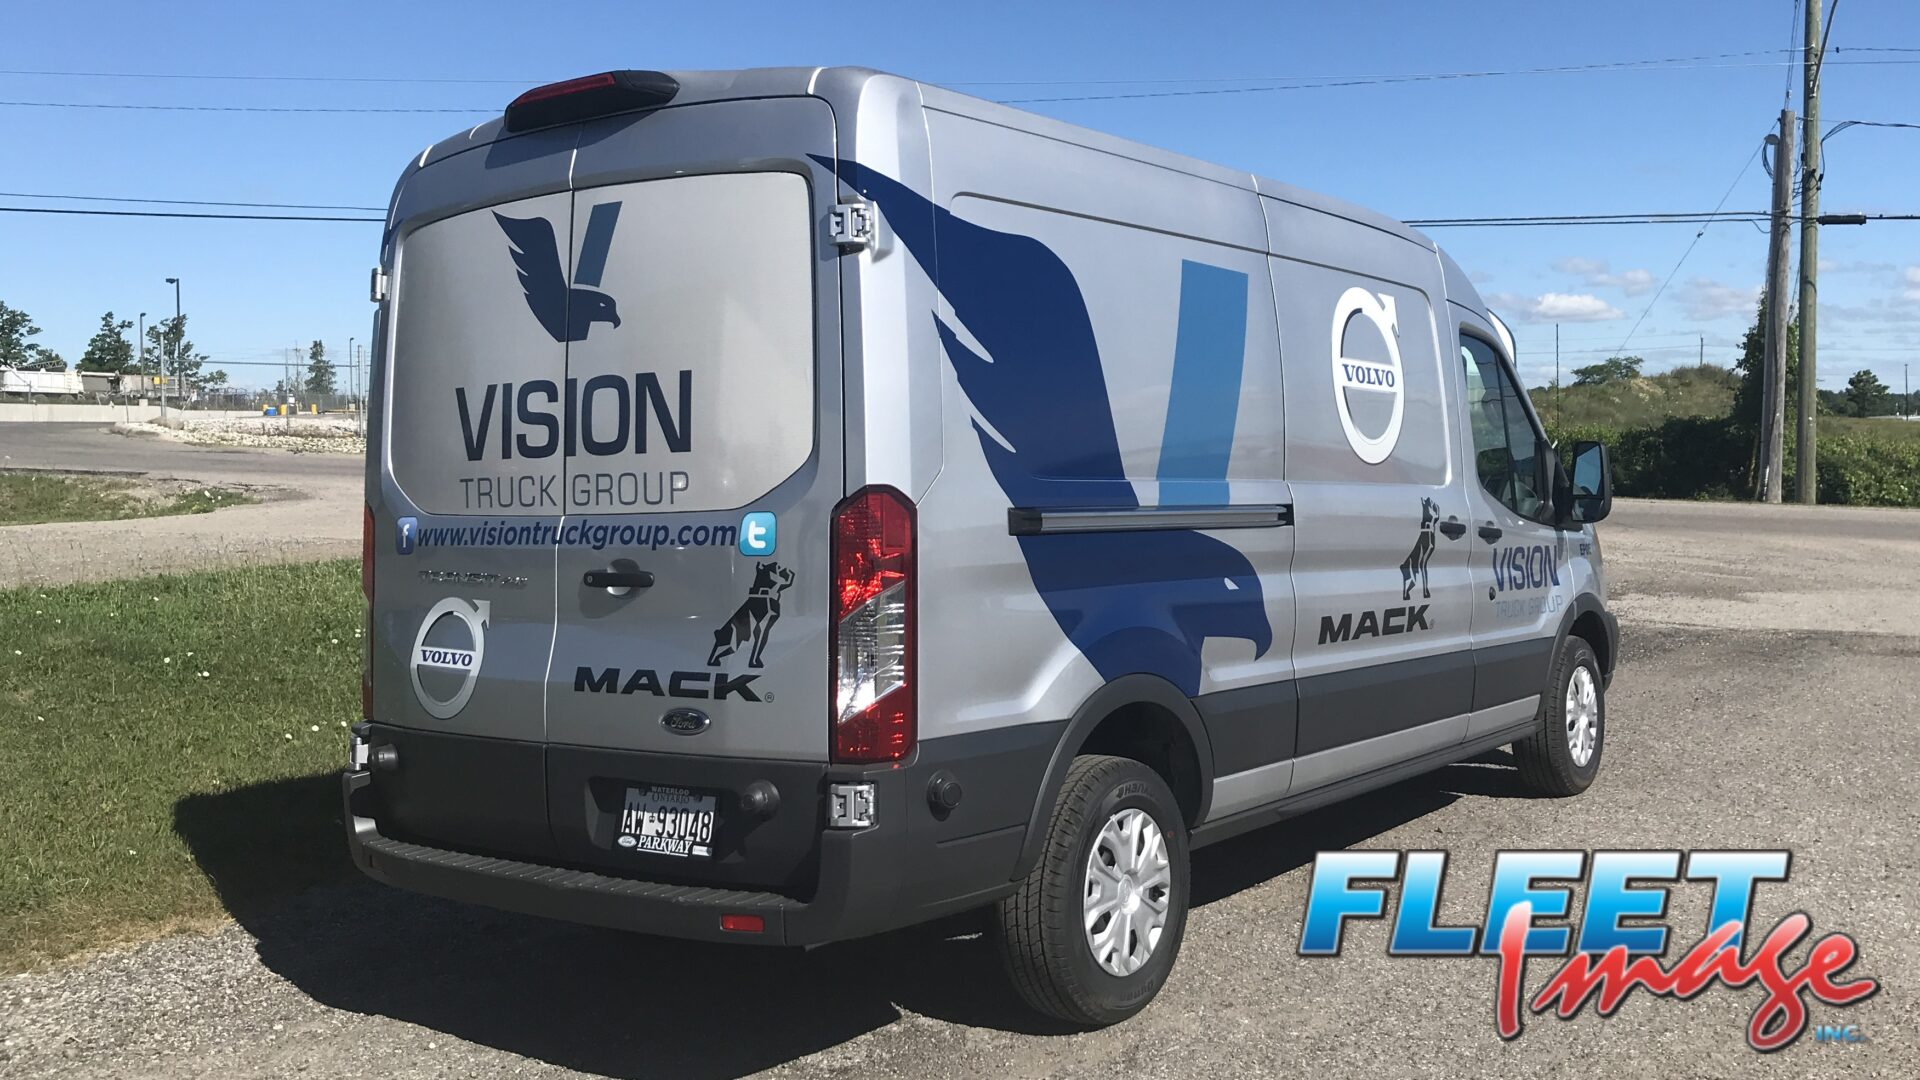 Vehicle with a VISION TRUCK GROUPdecal sticker